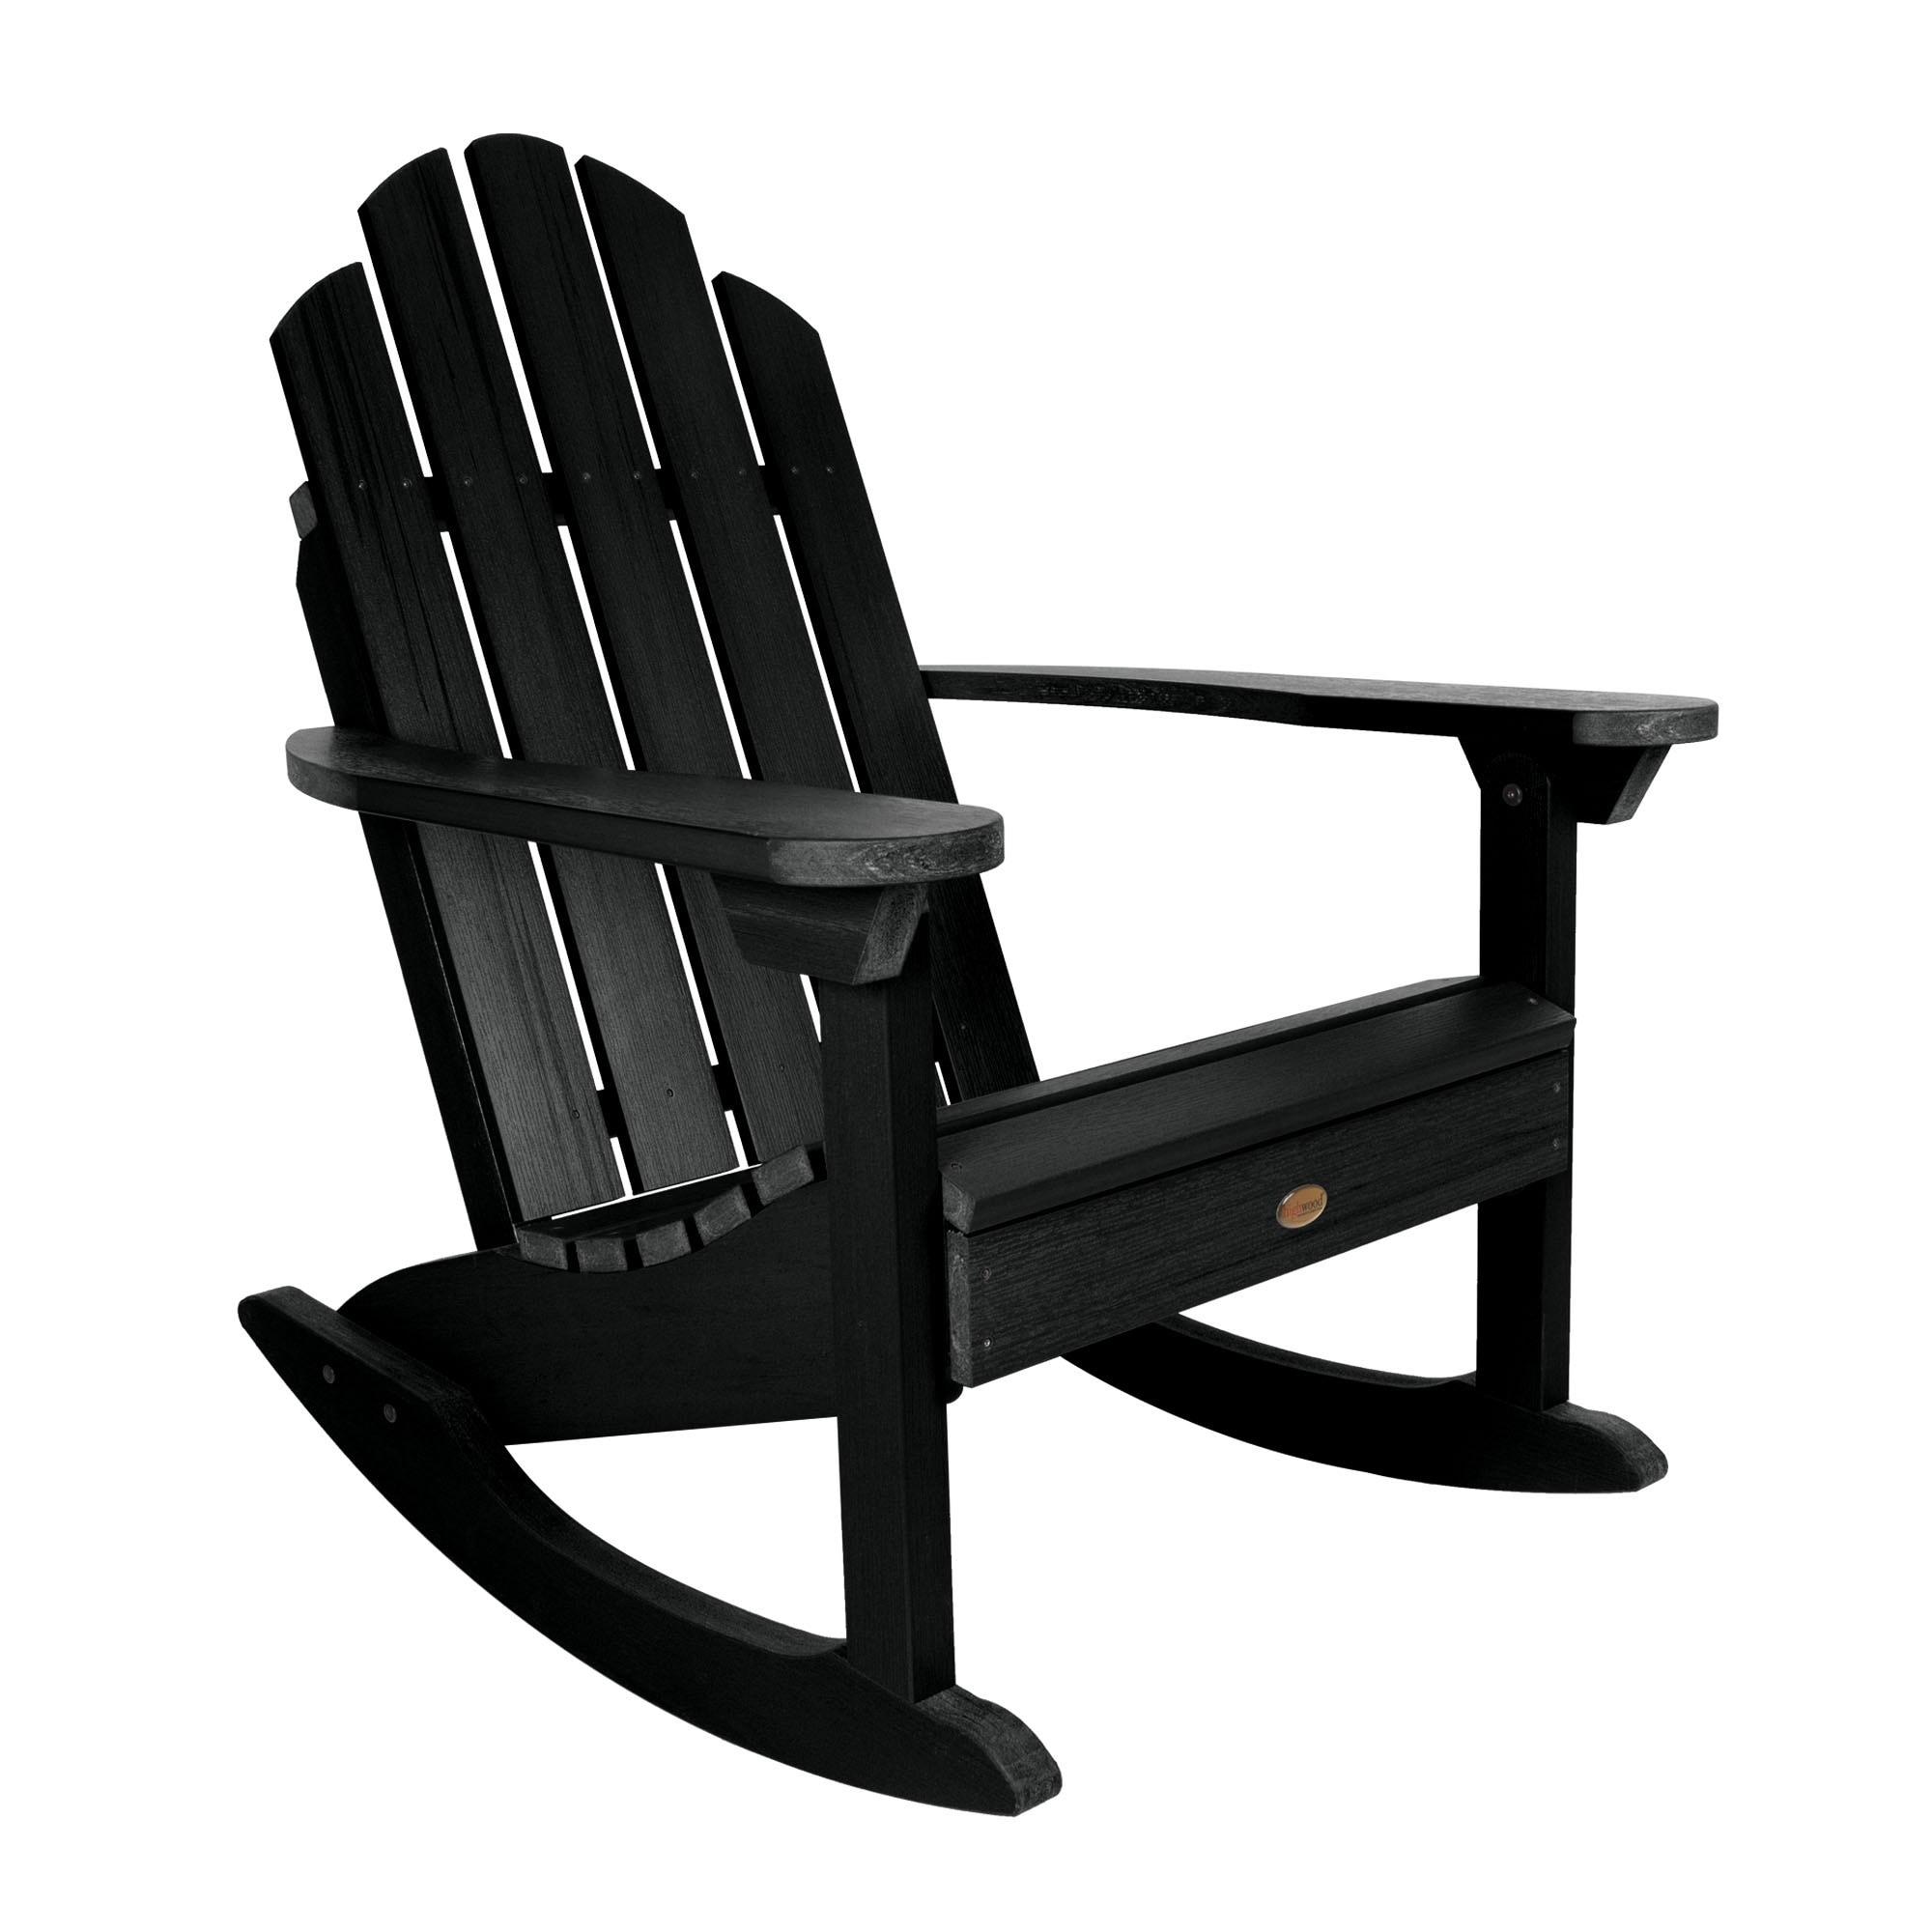 Shop 2 Classic Westport Adirondack Rocking Chairs With 1 Classic